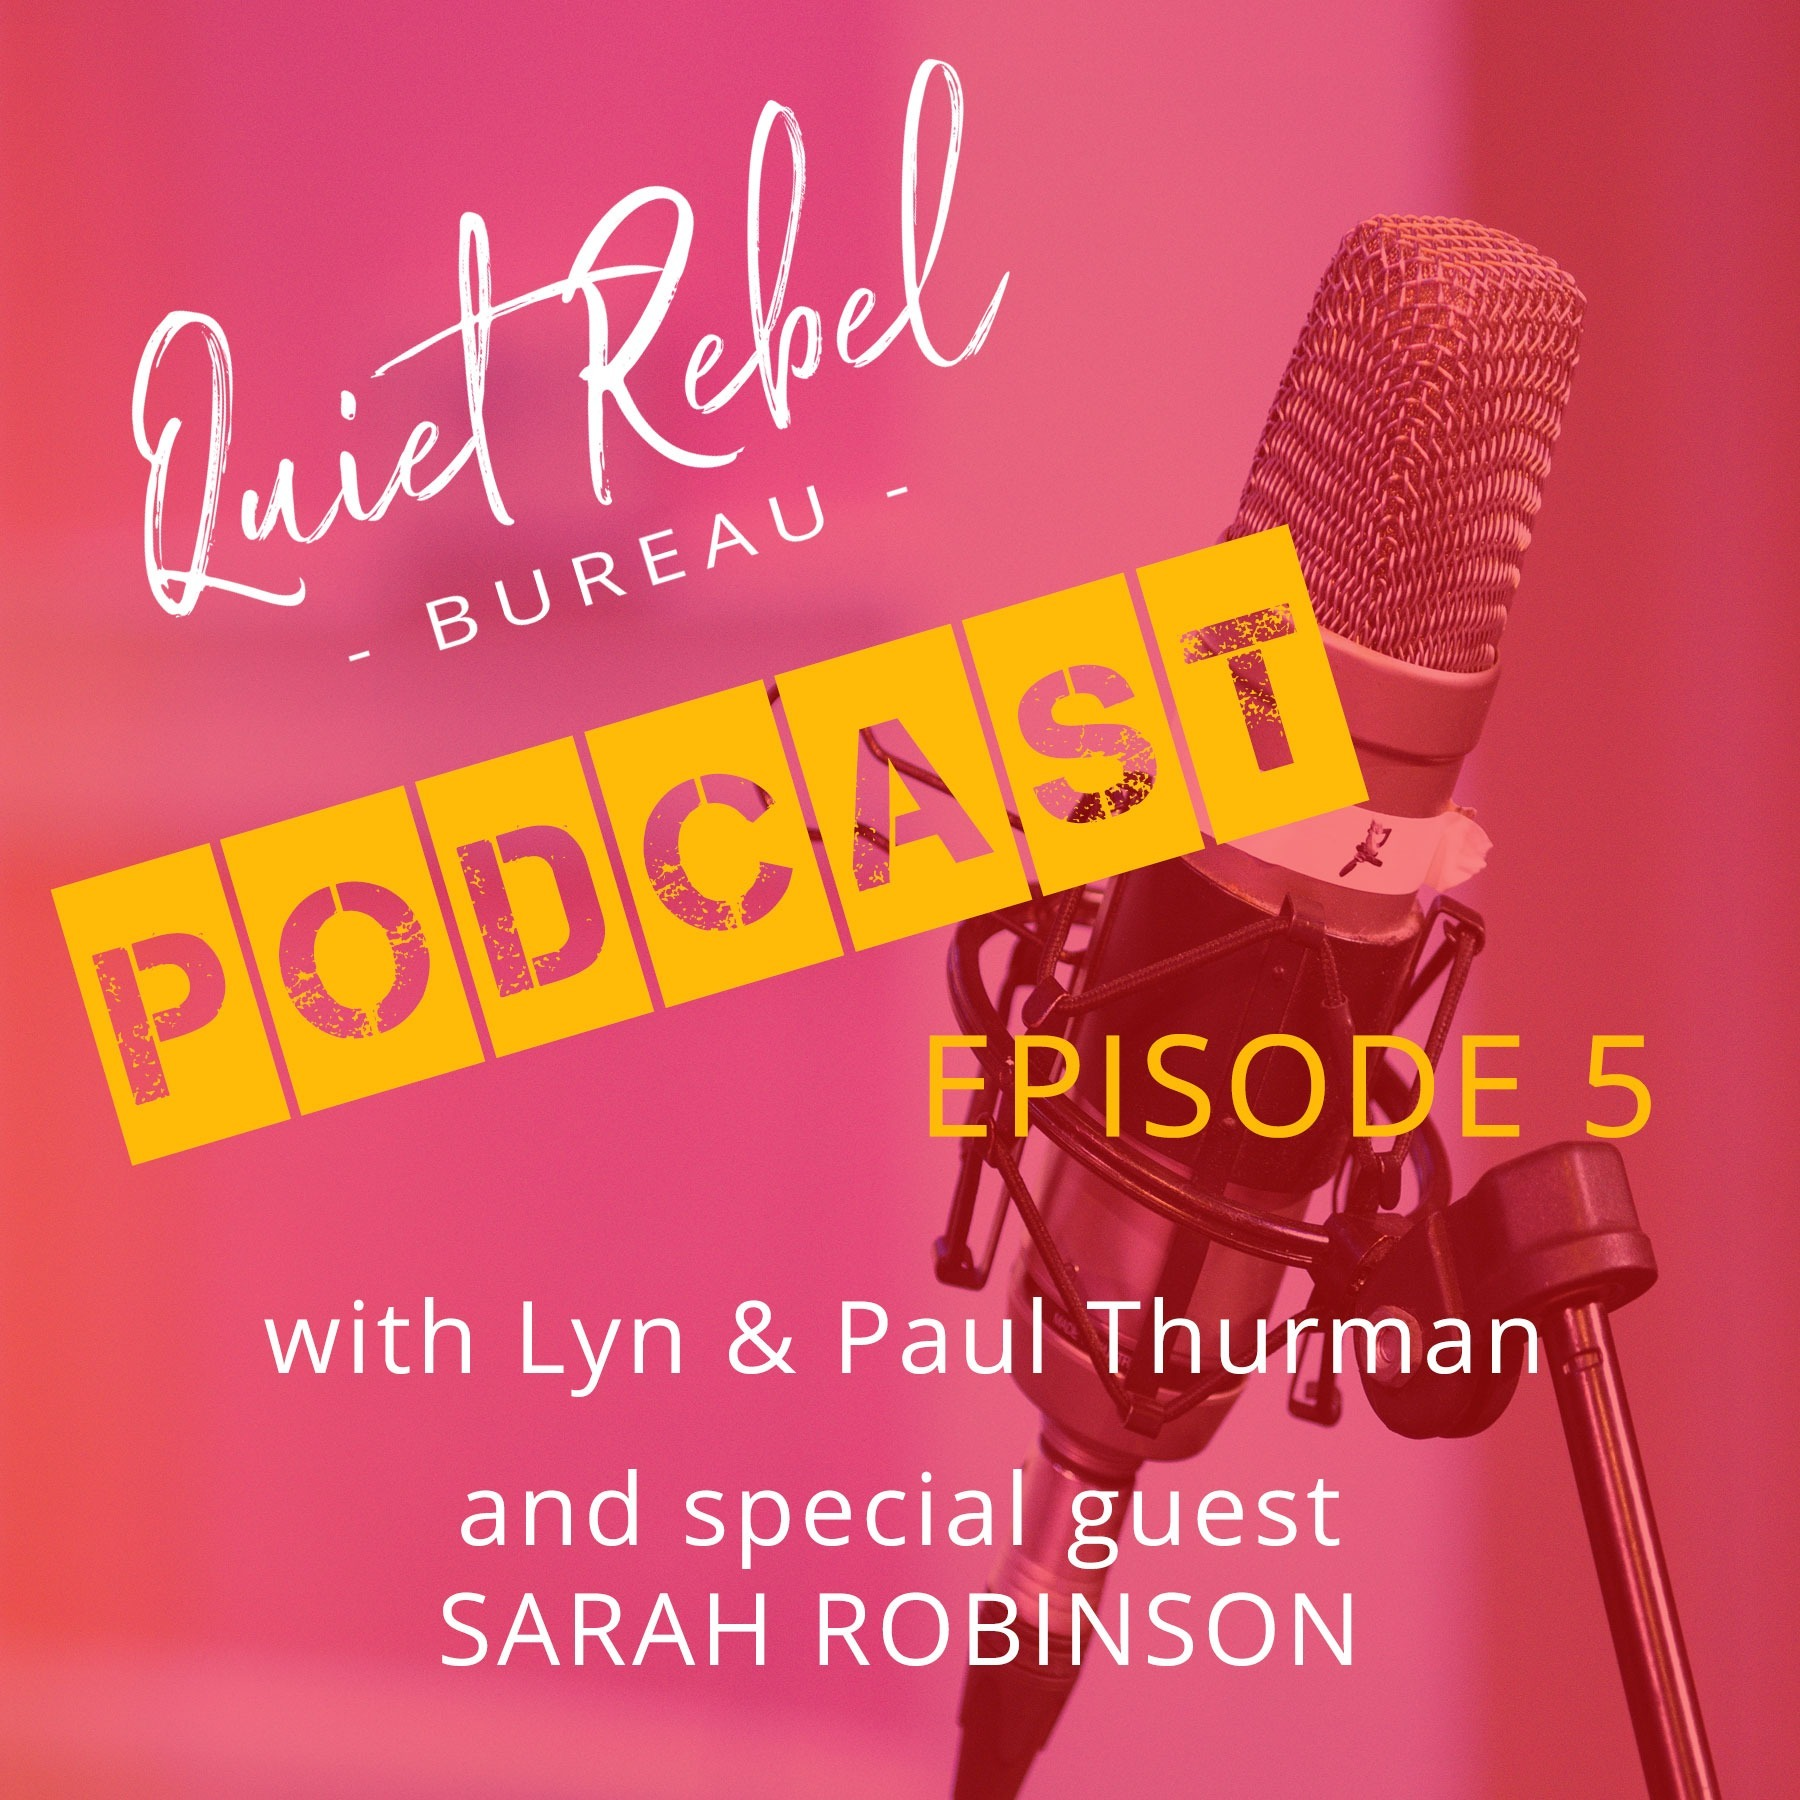 Quiet Rebel Bureau Interview With Sarah Robinson